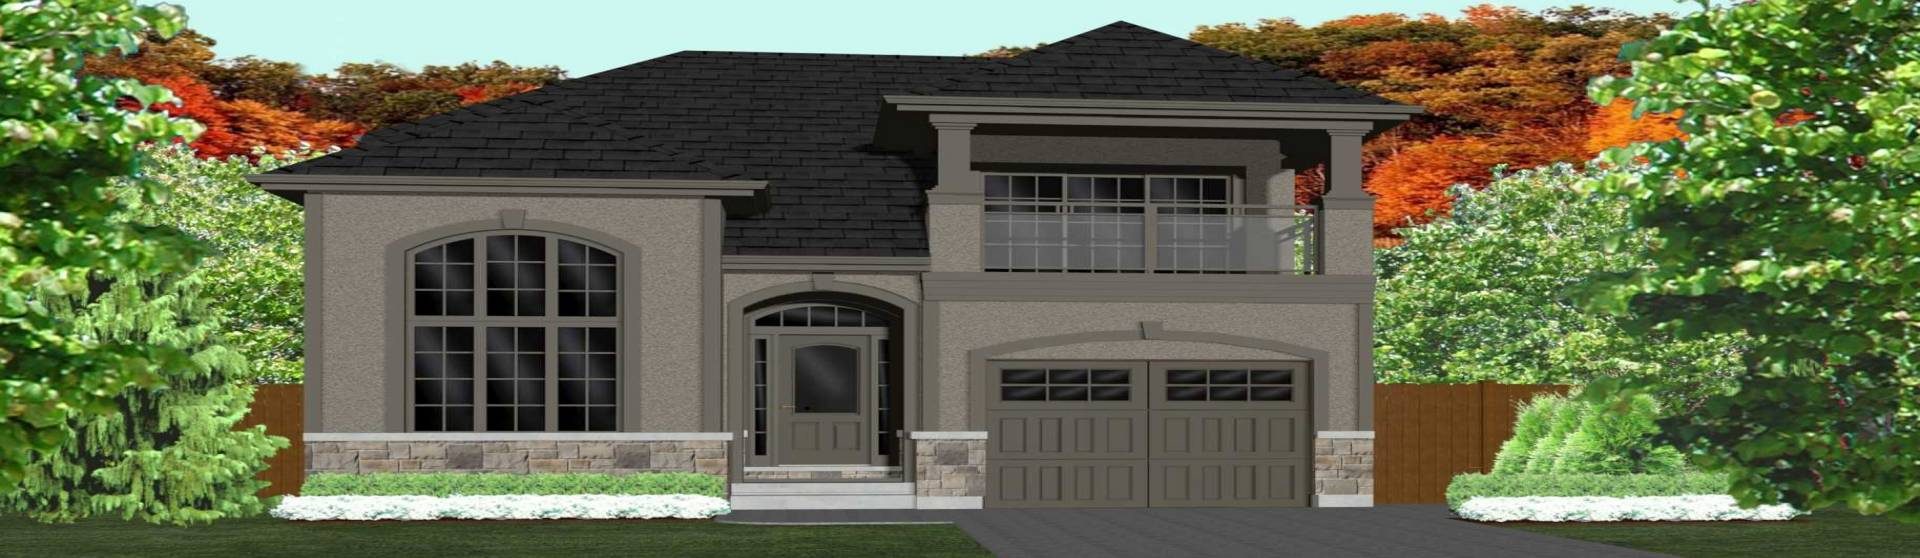 Lot 32 Howland Dr- St. Catharines- Ontario L2R 7K6, 3 Bedrooms Bedrooms, 5 Rooms Rooms,2 BathroomsBathrooms,Detached,Sale,Howland,X4541851